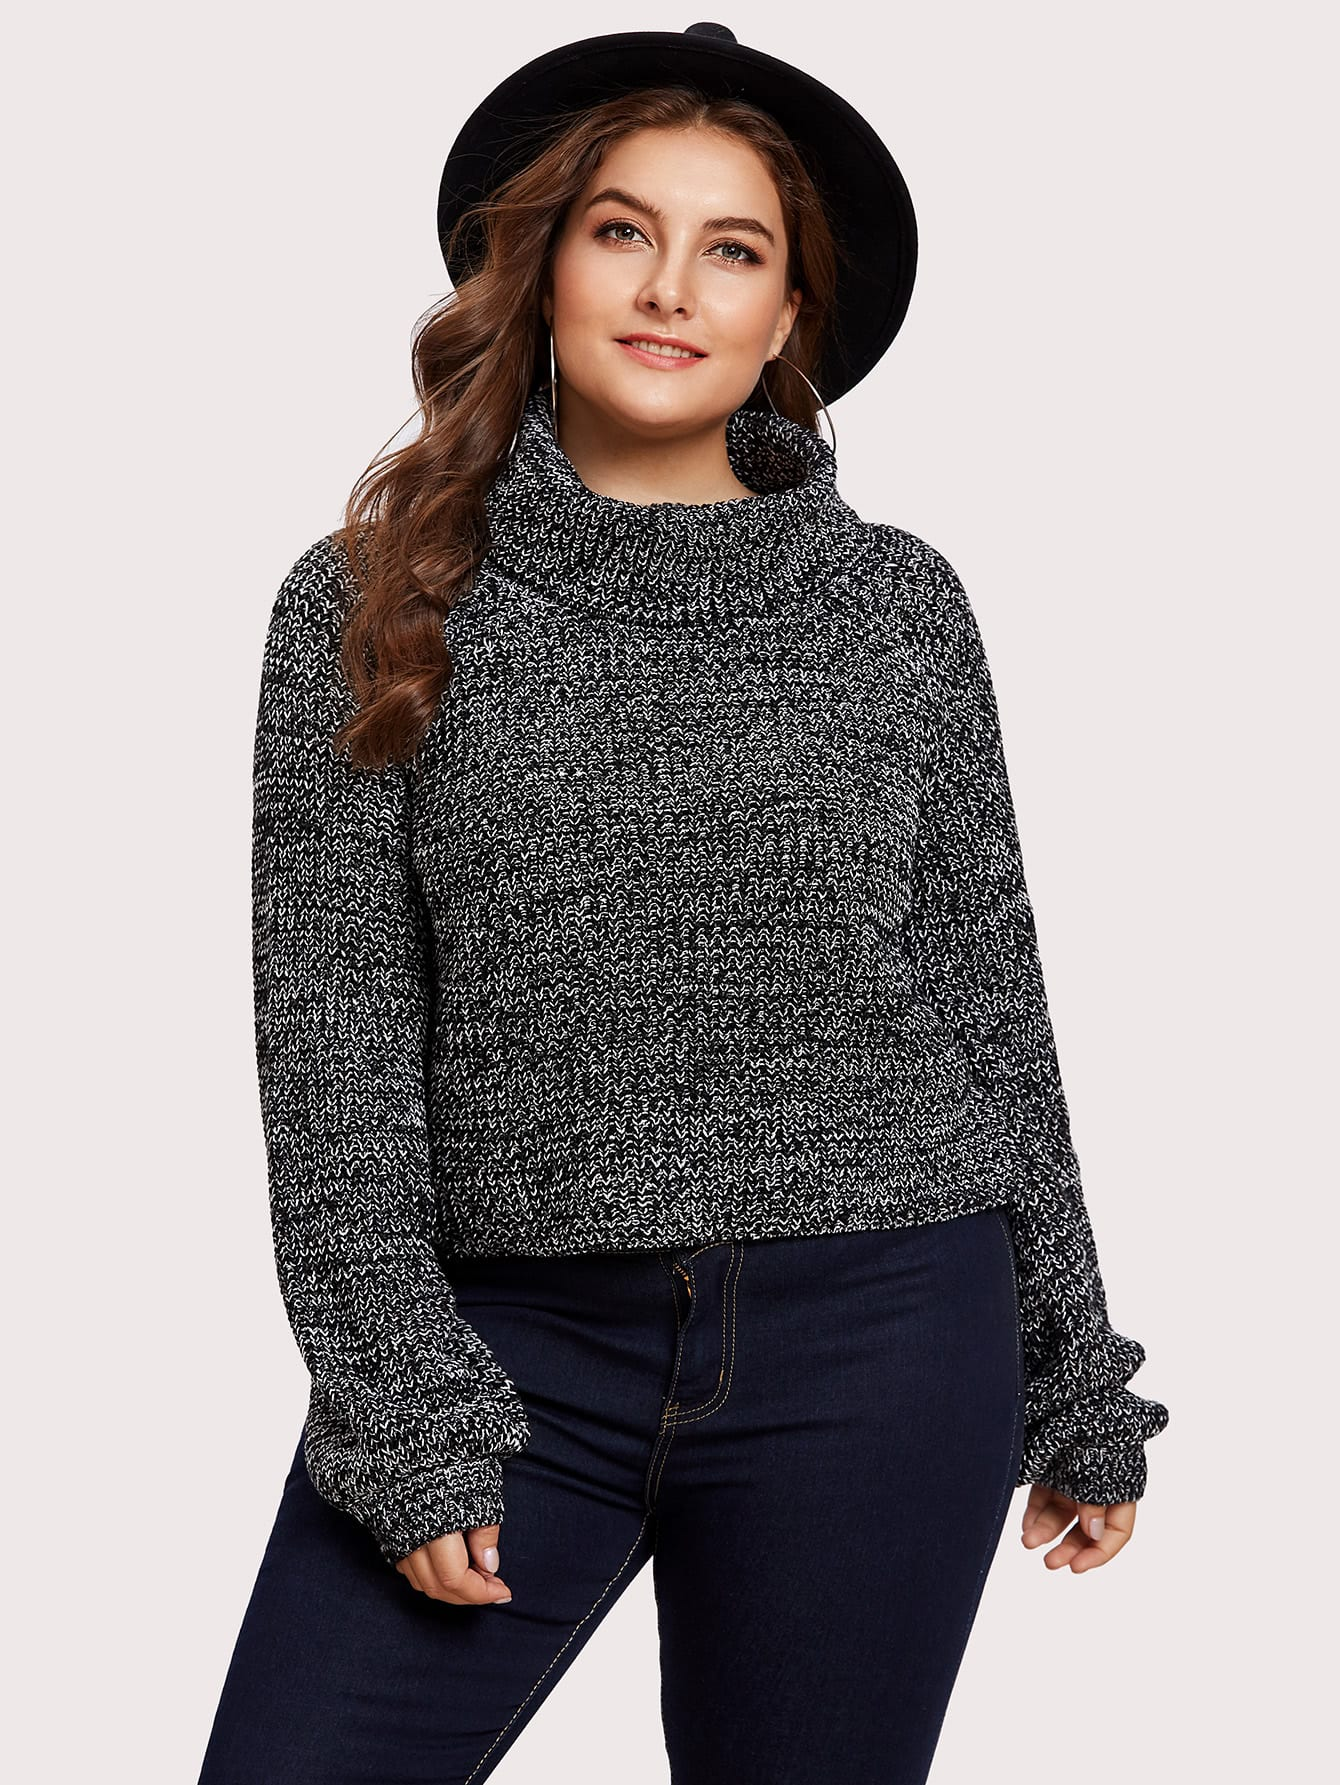 Rolled Neck Marled Knit Sweater bar iii new black white women s xl marled open knit scoop neck sweater $79 439